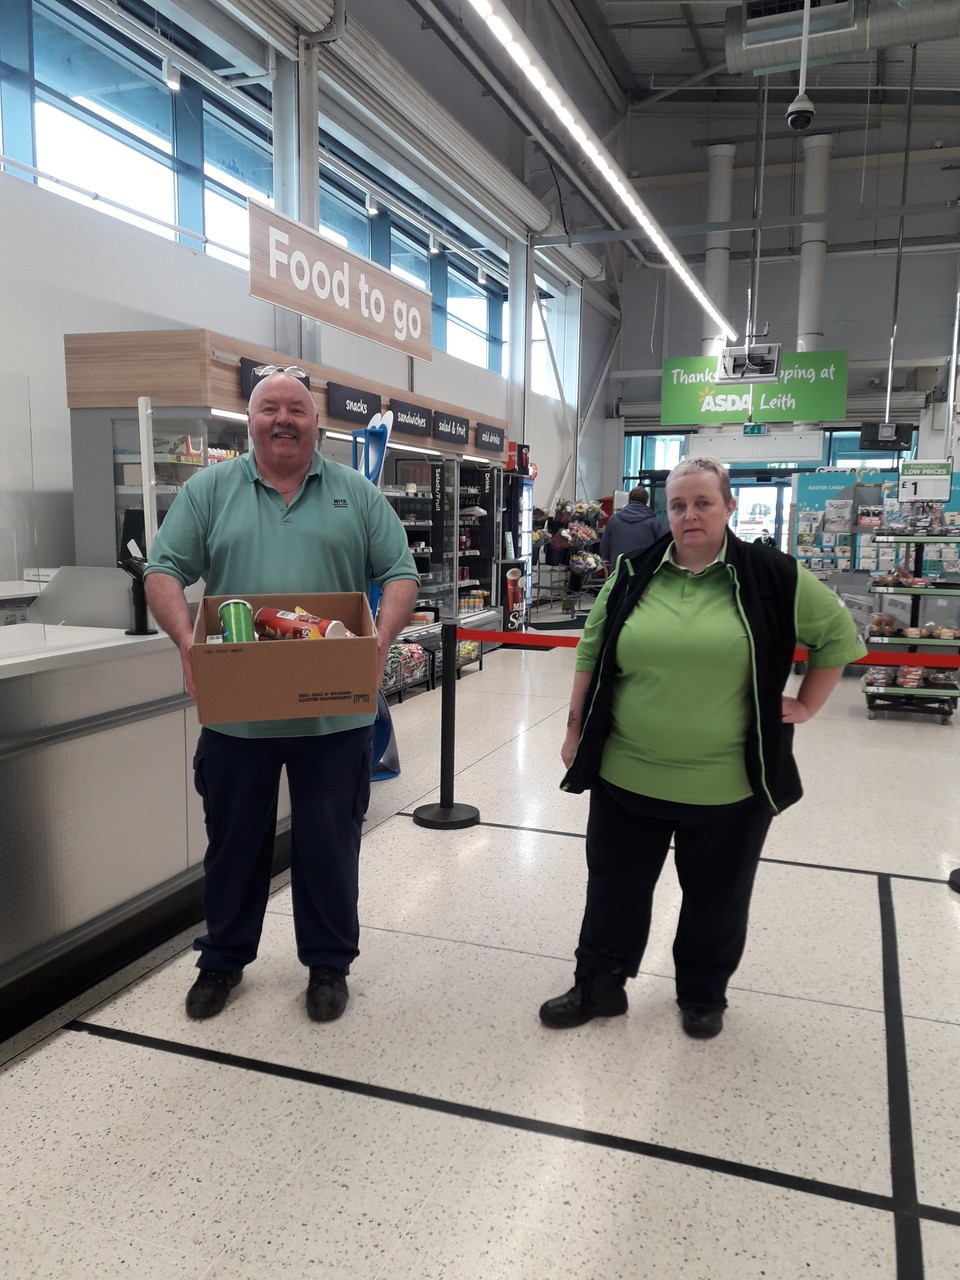 NHS donation | Asda Leith